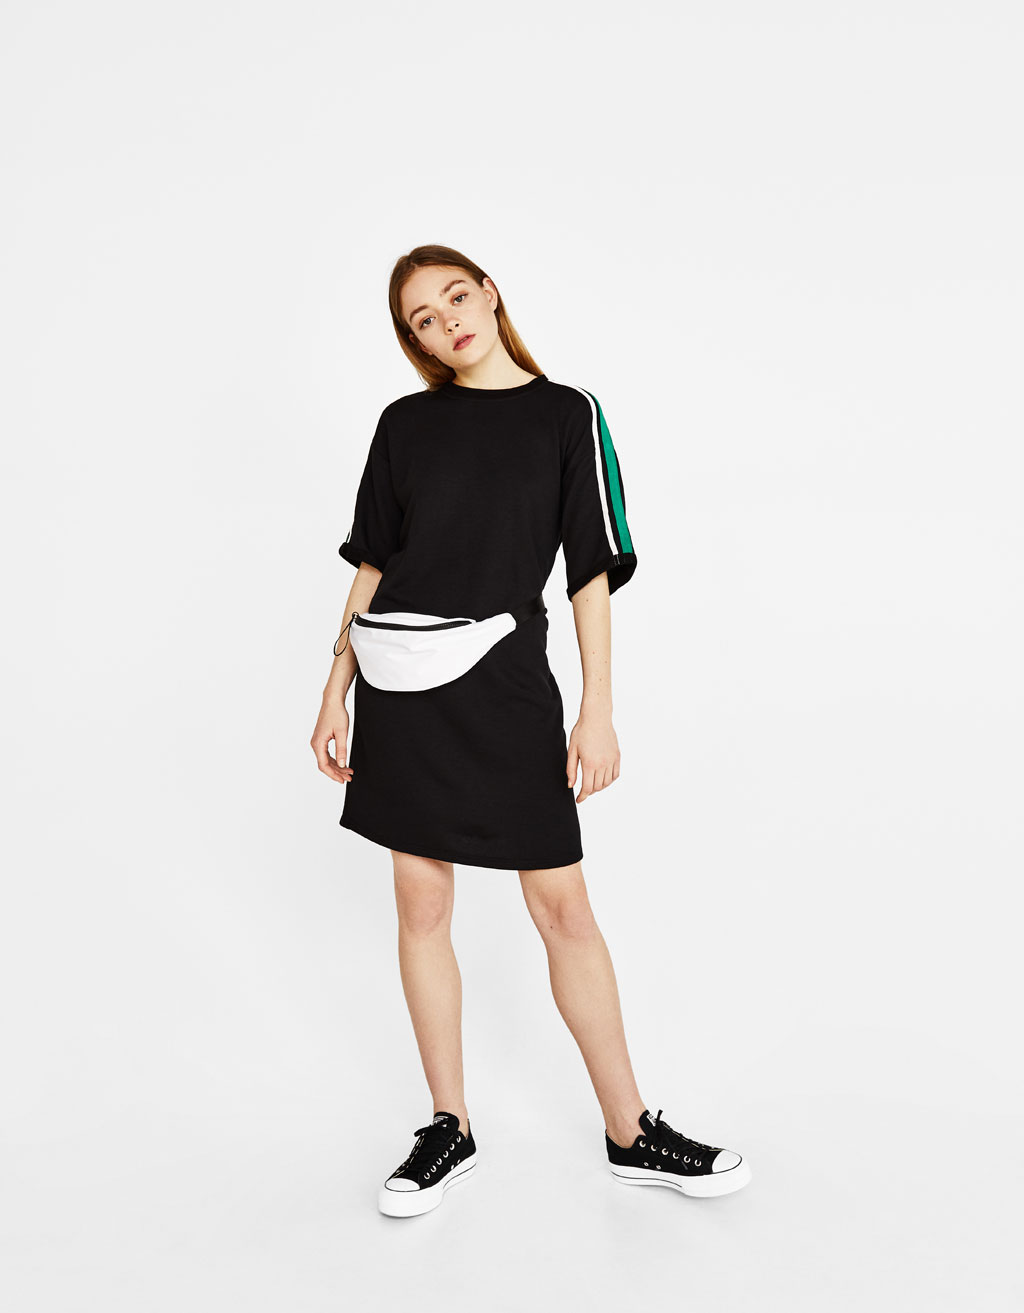 Sweatshirt dress with side stripes